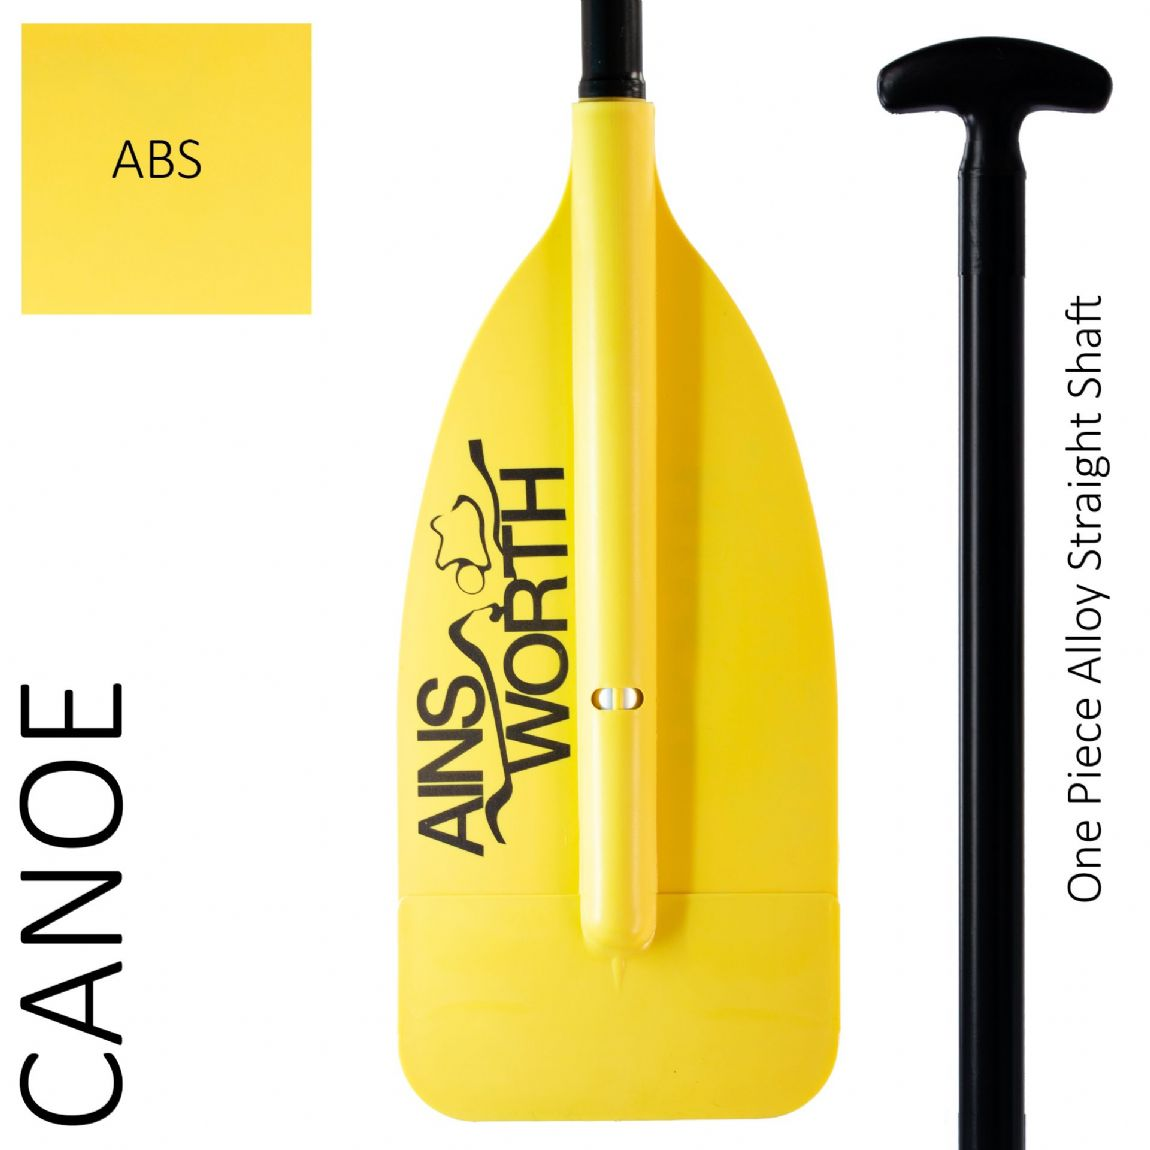 Canoe Paddle (ABS) One Piece Alloy